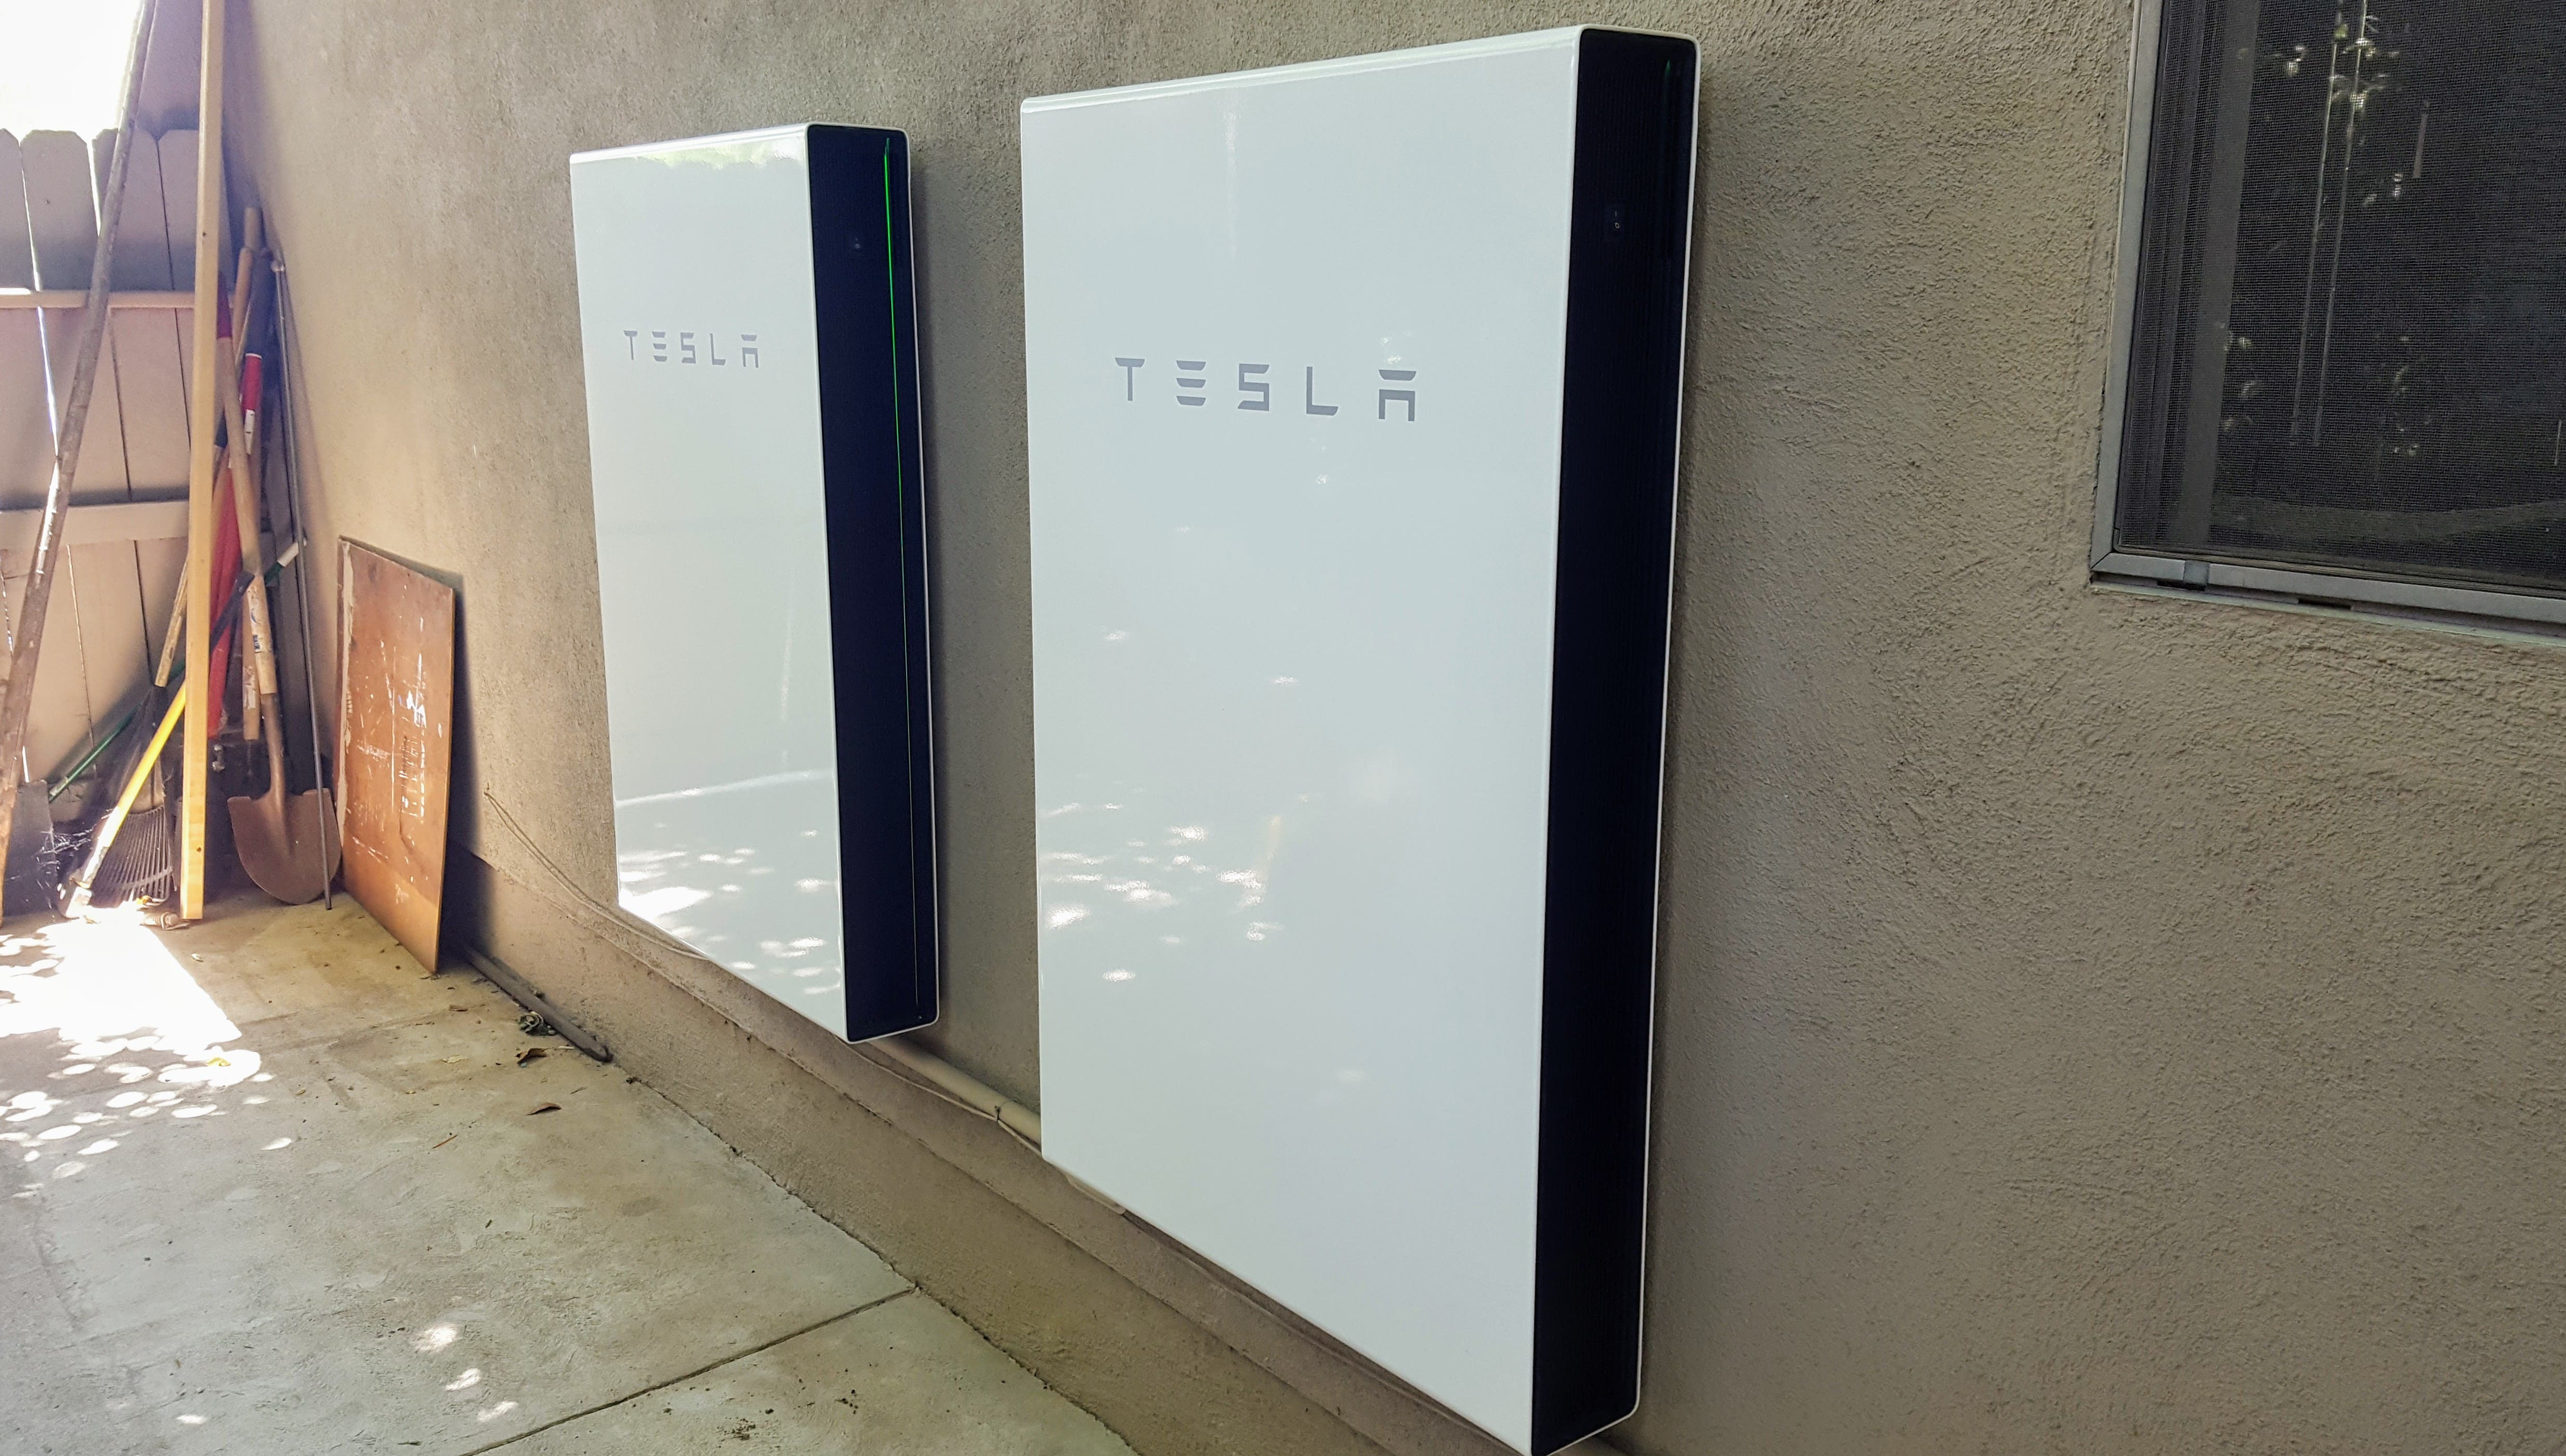 Double Tesla Powerwall Installation Lessons Learned